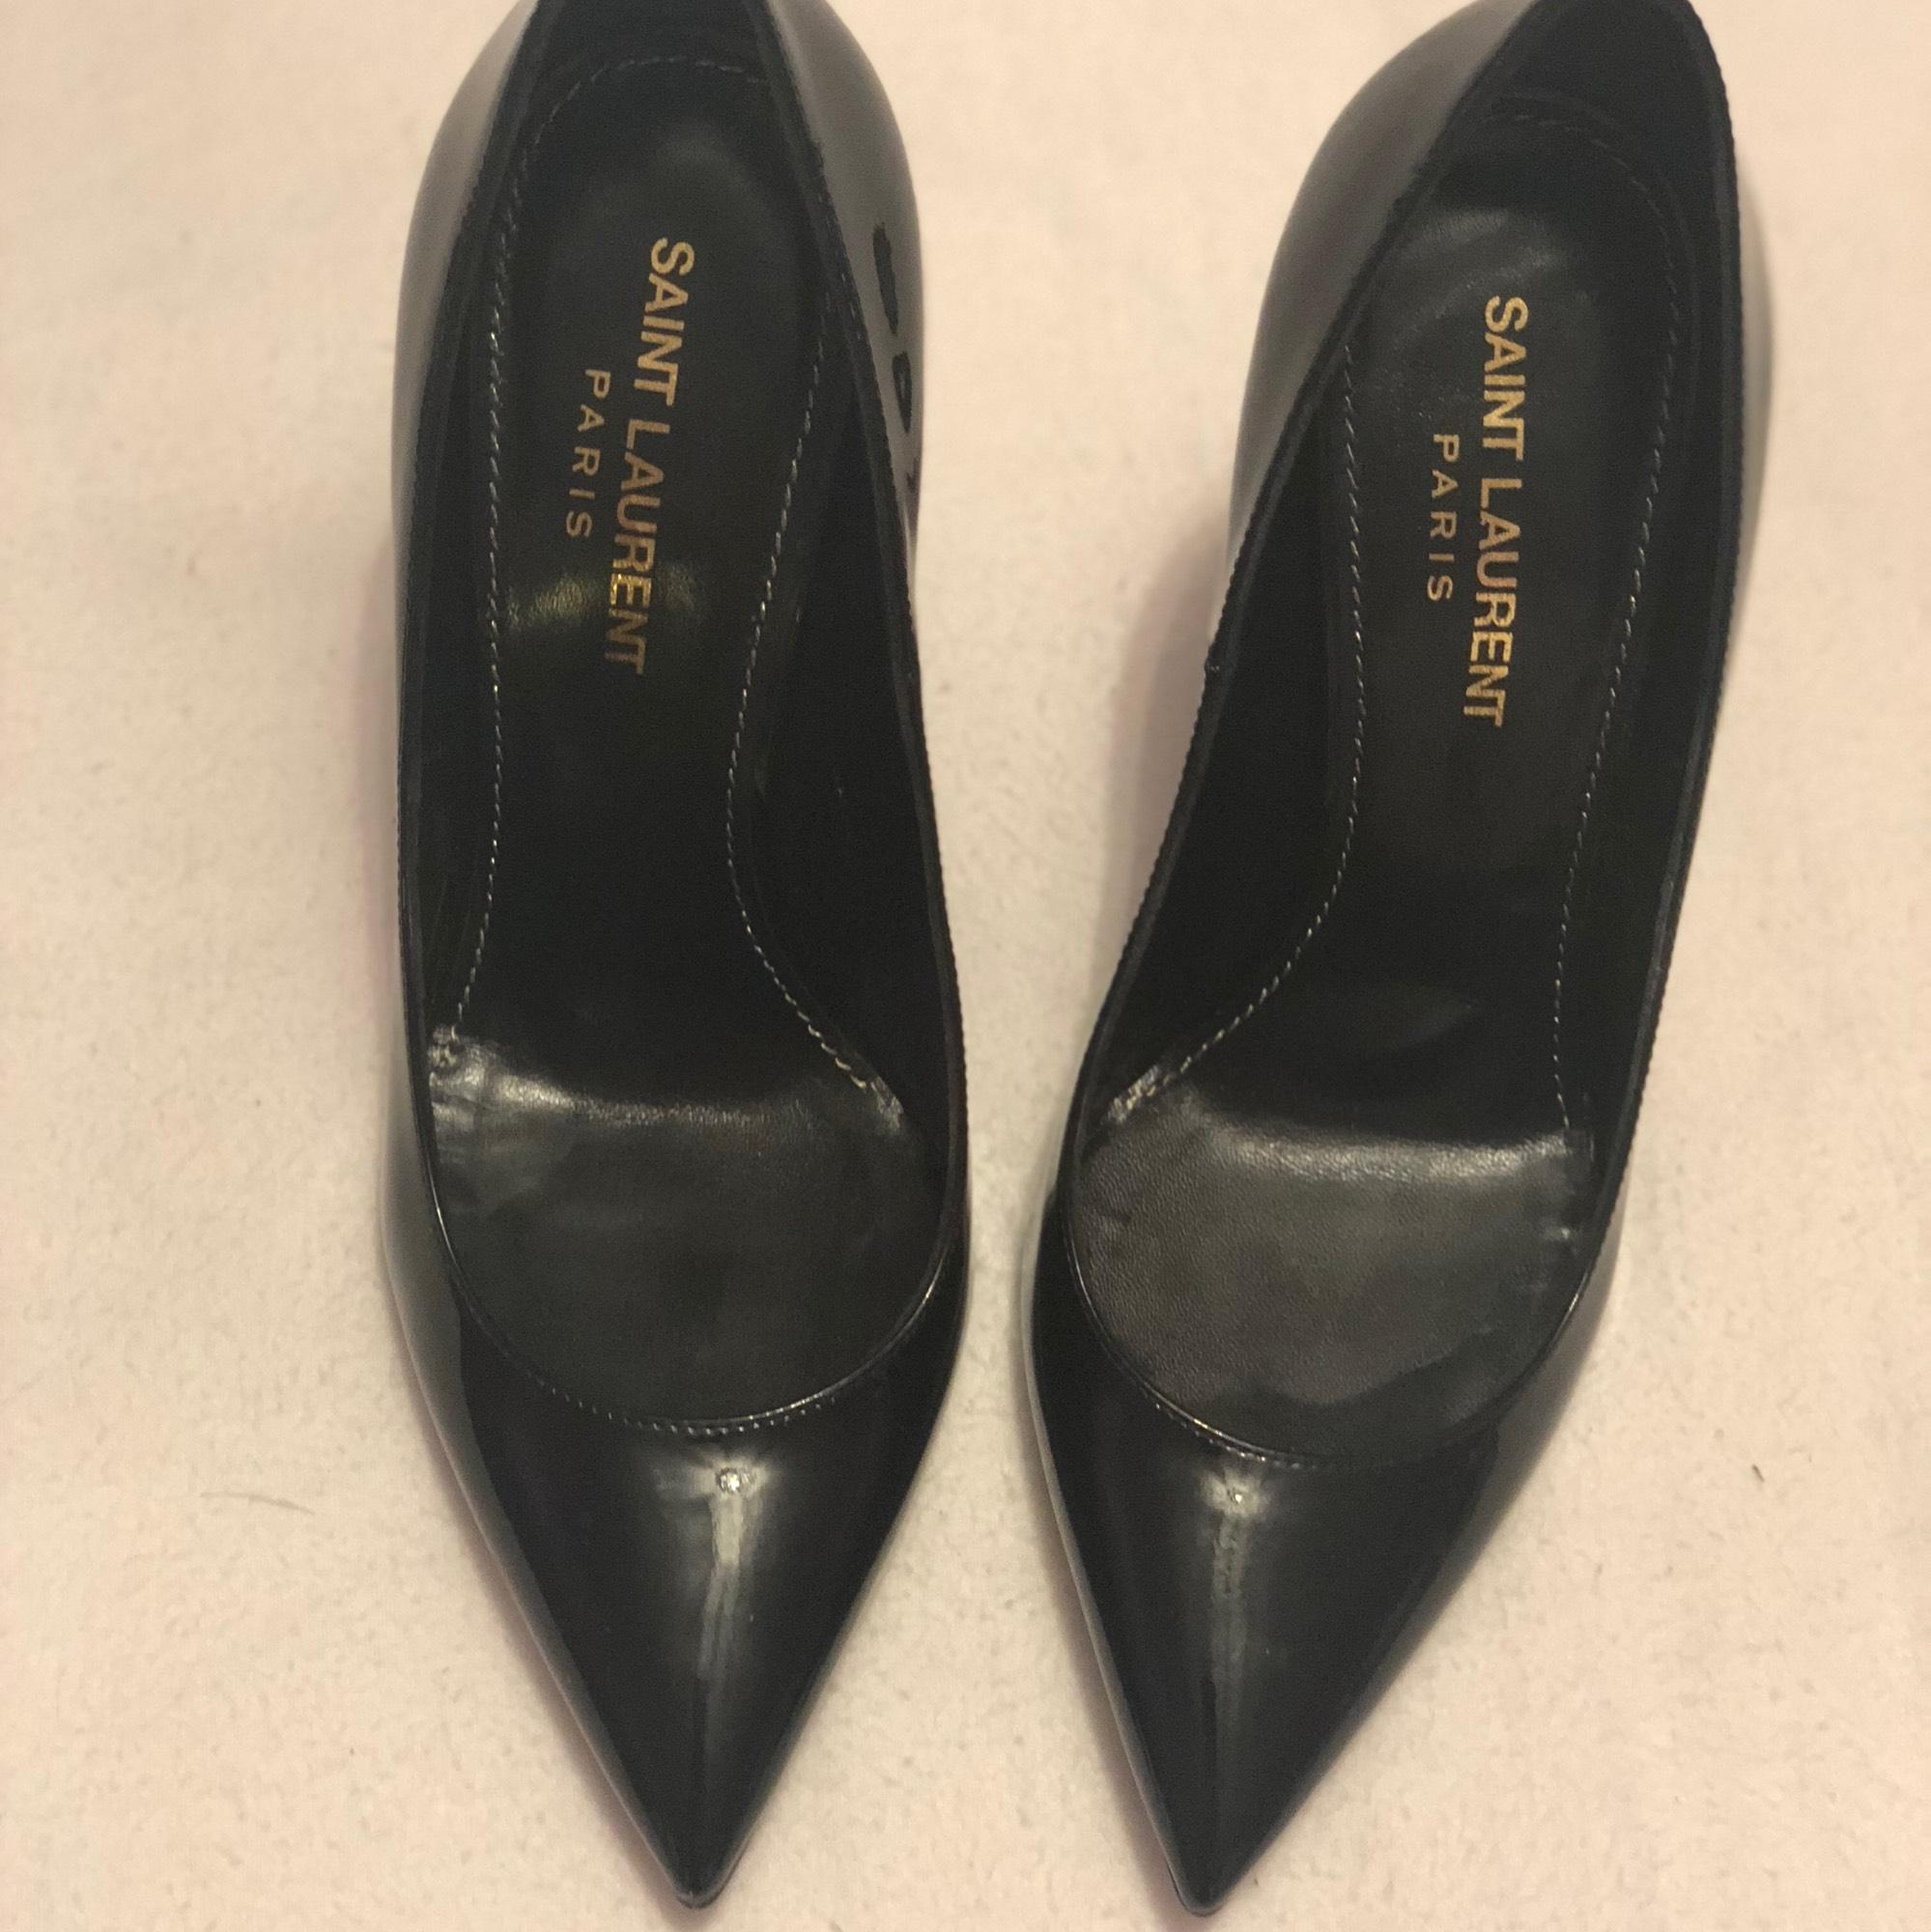 350c32c98 US 6 Saint Laurent Black Opyum Opyum Opyum Heels Pumps Size EU 36 (Approx.